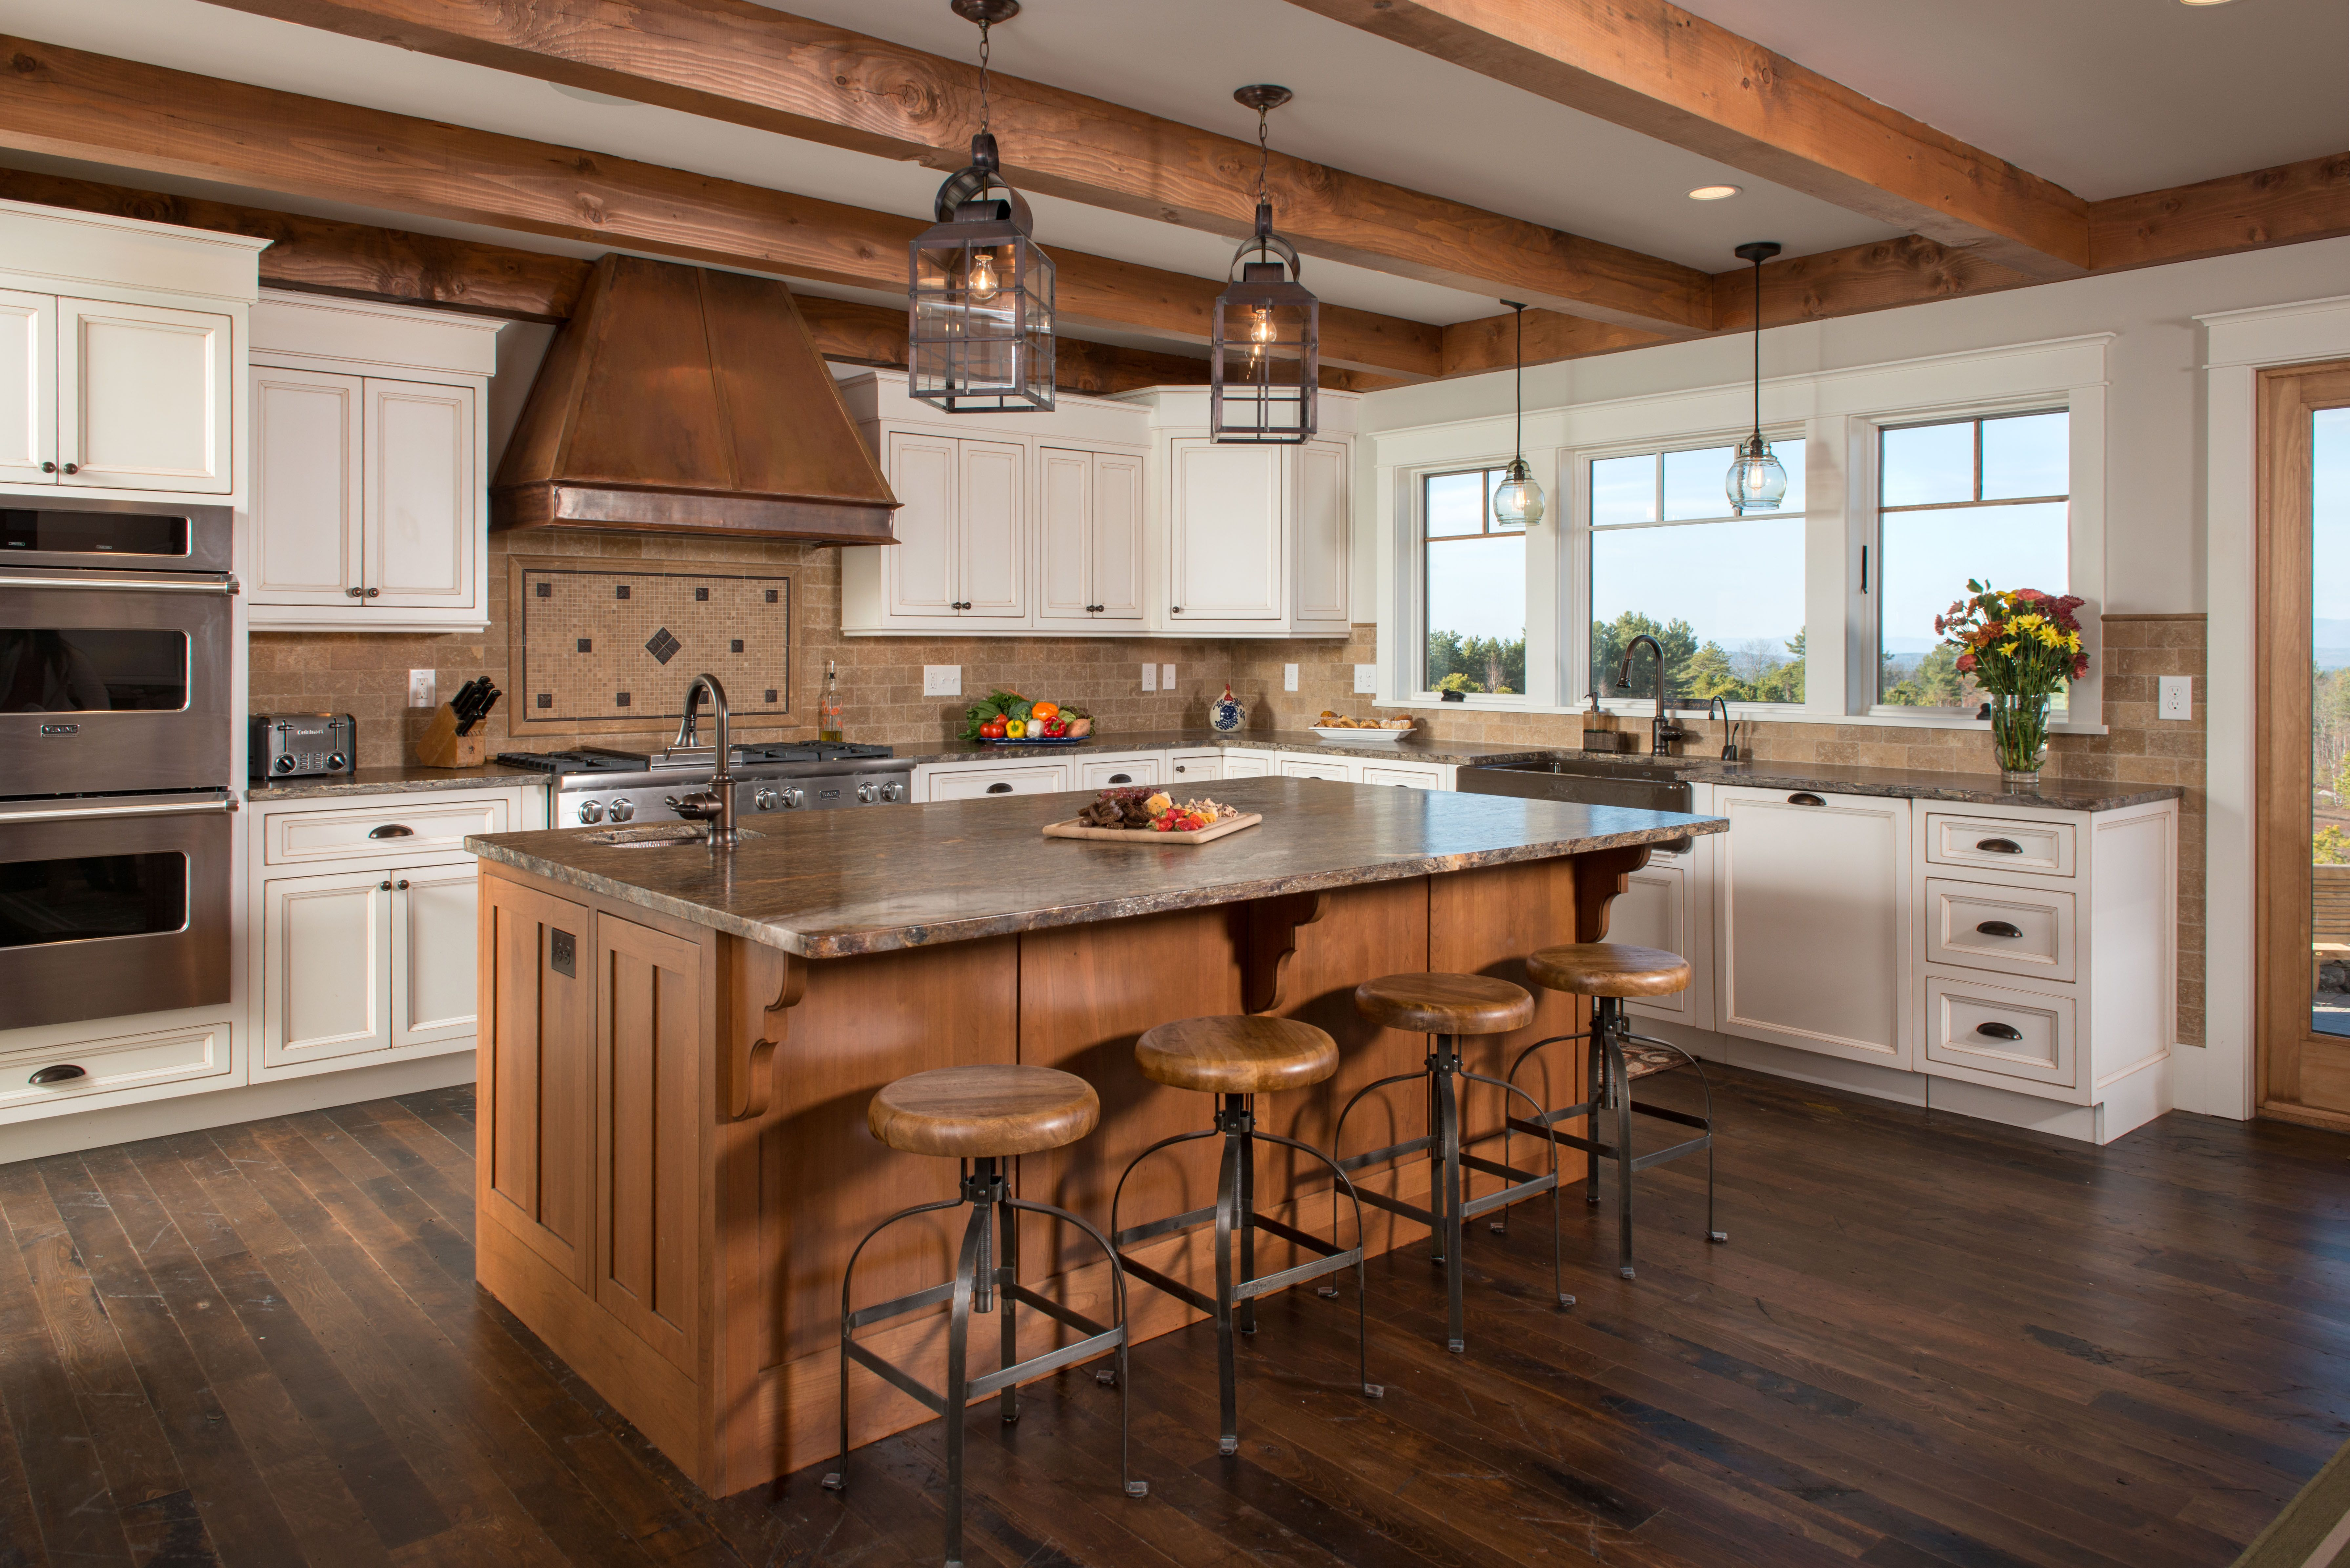 White Cabinets With Med Stain Wood Island Cabinet New Durham Interior Design Kitchen Small Stained Kitchen Cabinets Kitchen Dinning Room